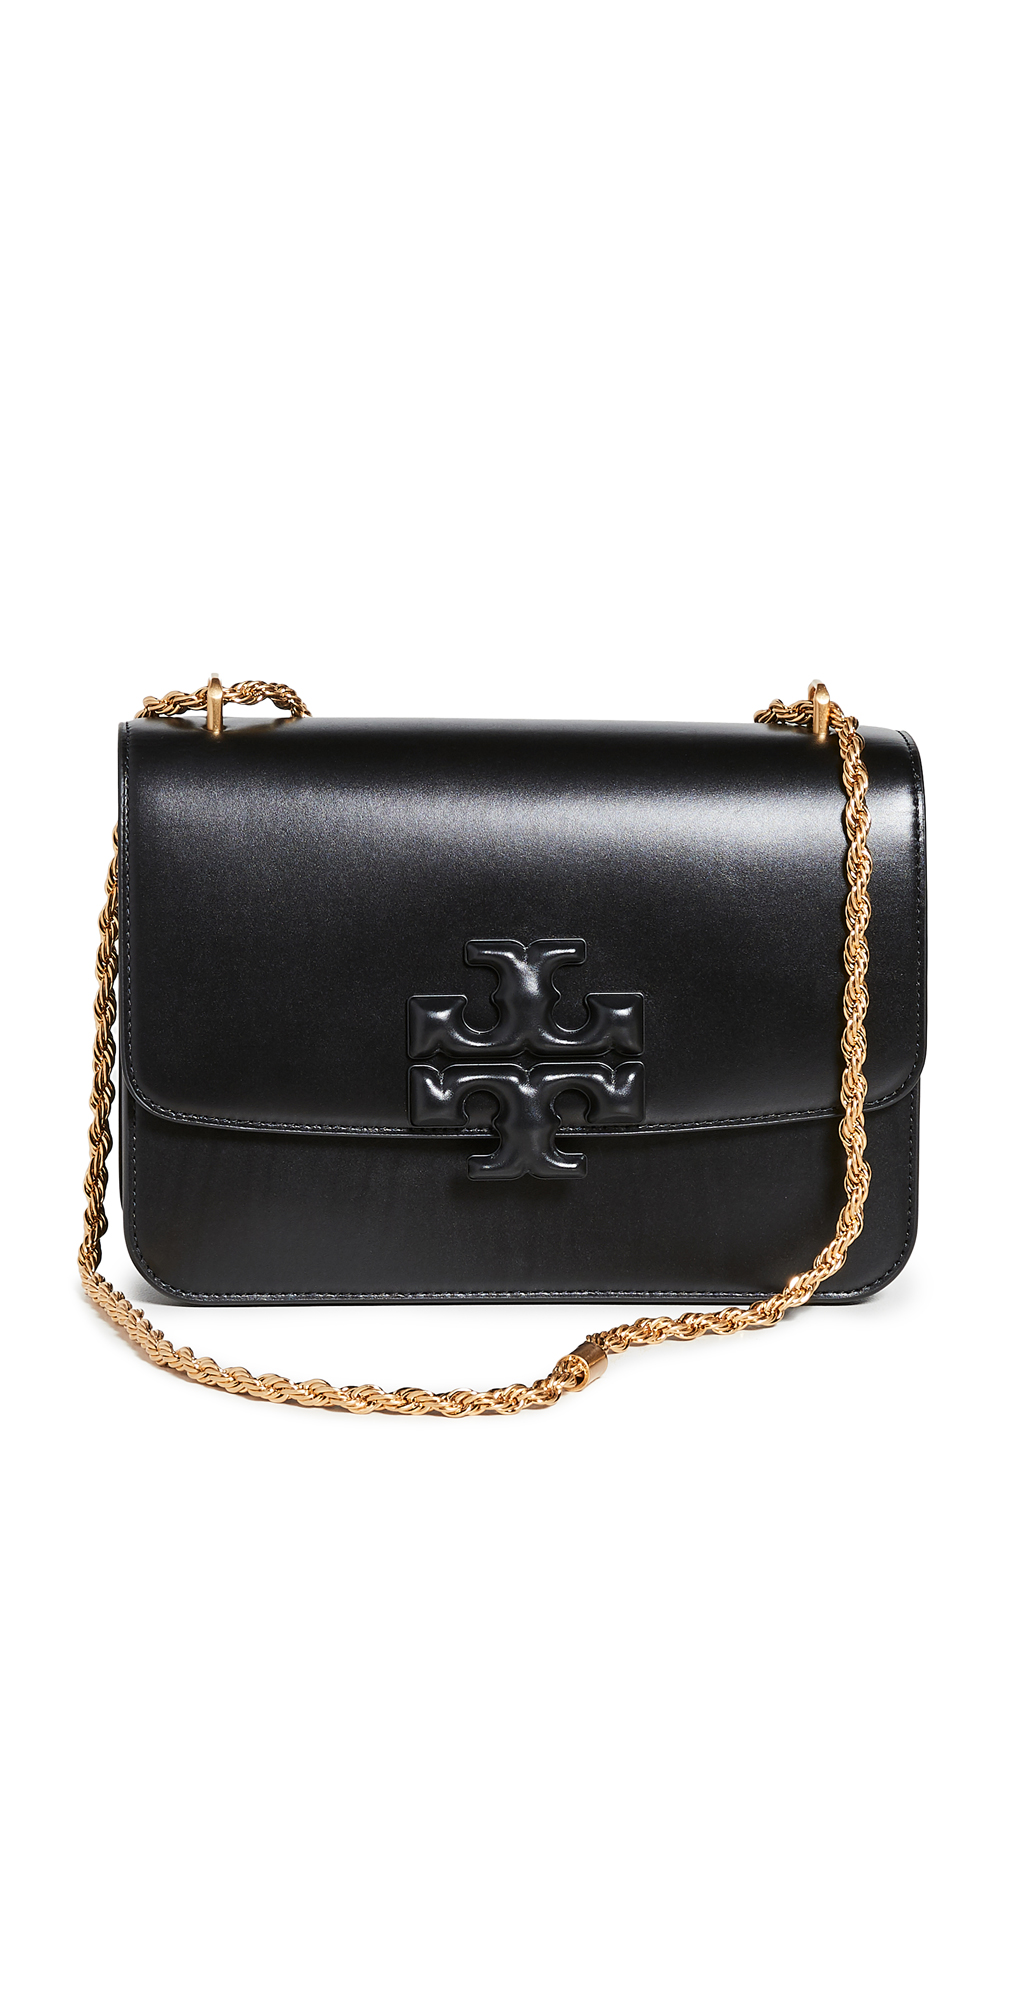 Tory Burch Eleanor Convertible Shoulder Bag